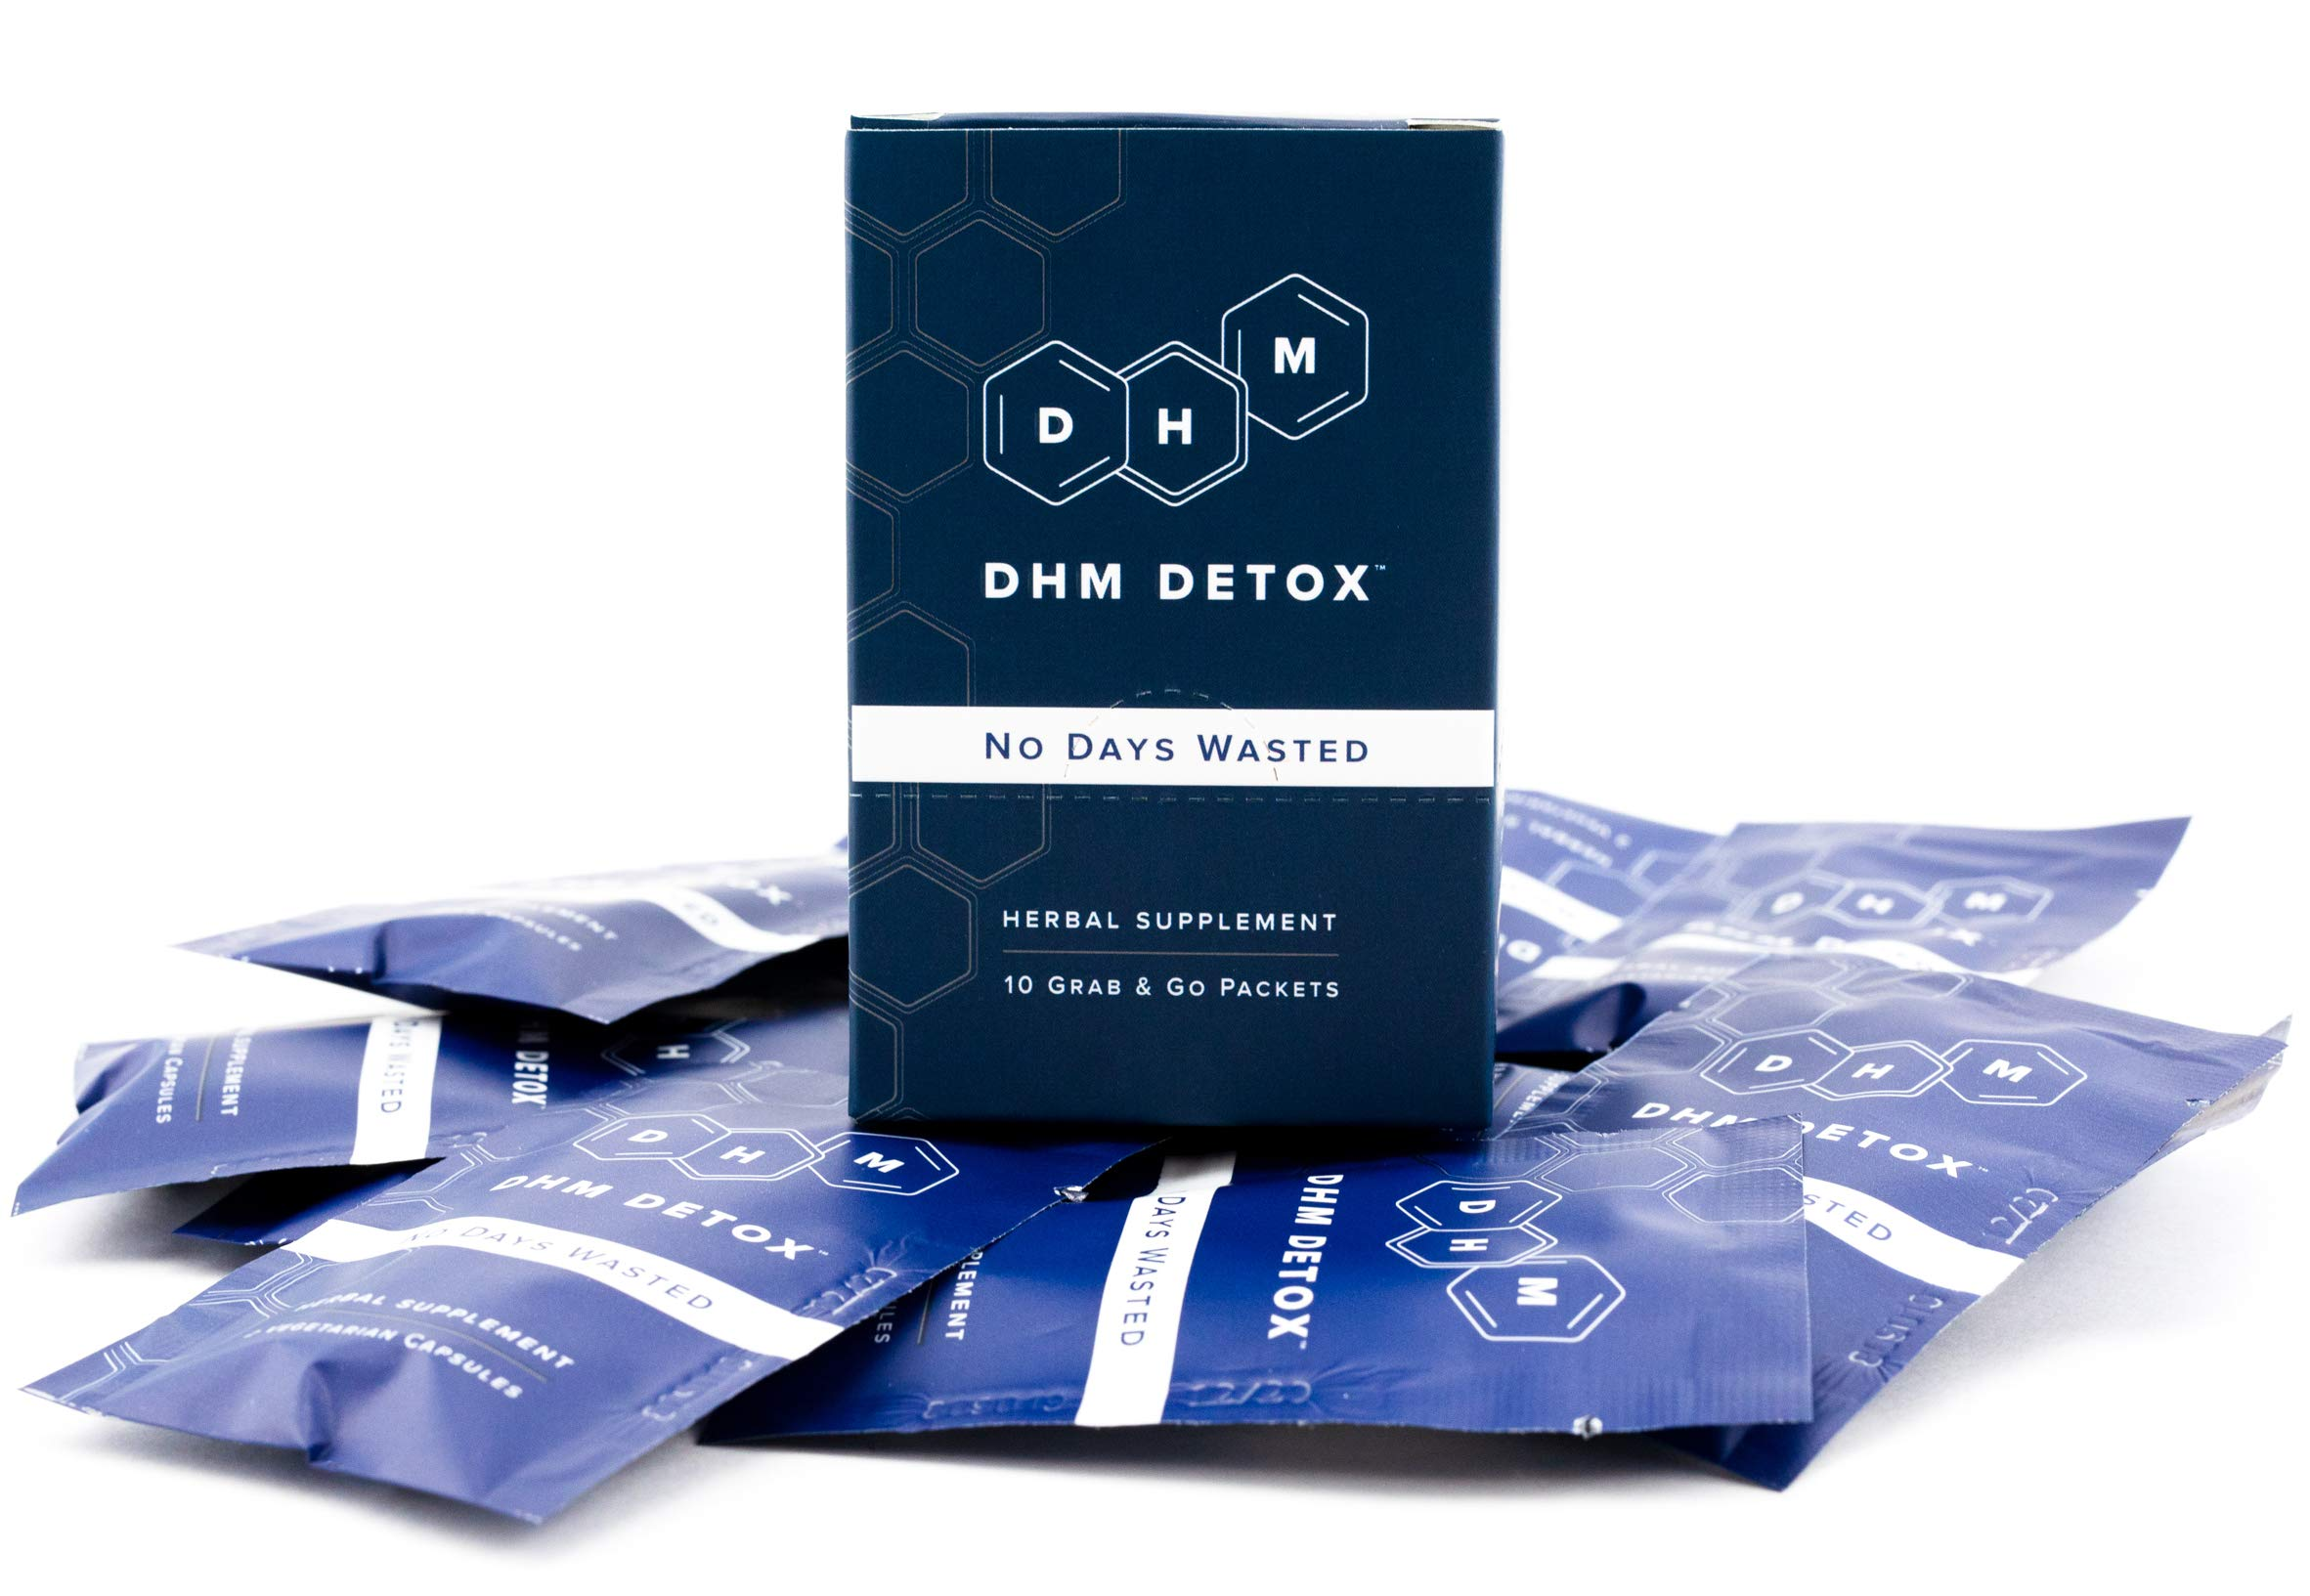 DHM Detox Hangover Prevention Pills - Dihydromyricetin (DHM), N Acetyl Cysteine, Milk Thistle, Prickly Pear, Hydration Electrolytes Blend-Take Right After-Alcohol-Not A Morning Recovery Hangover Cure